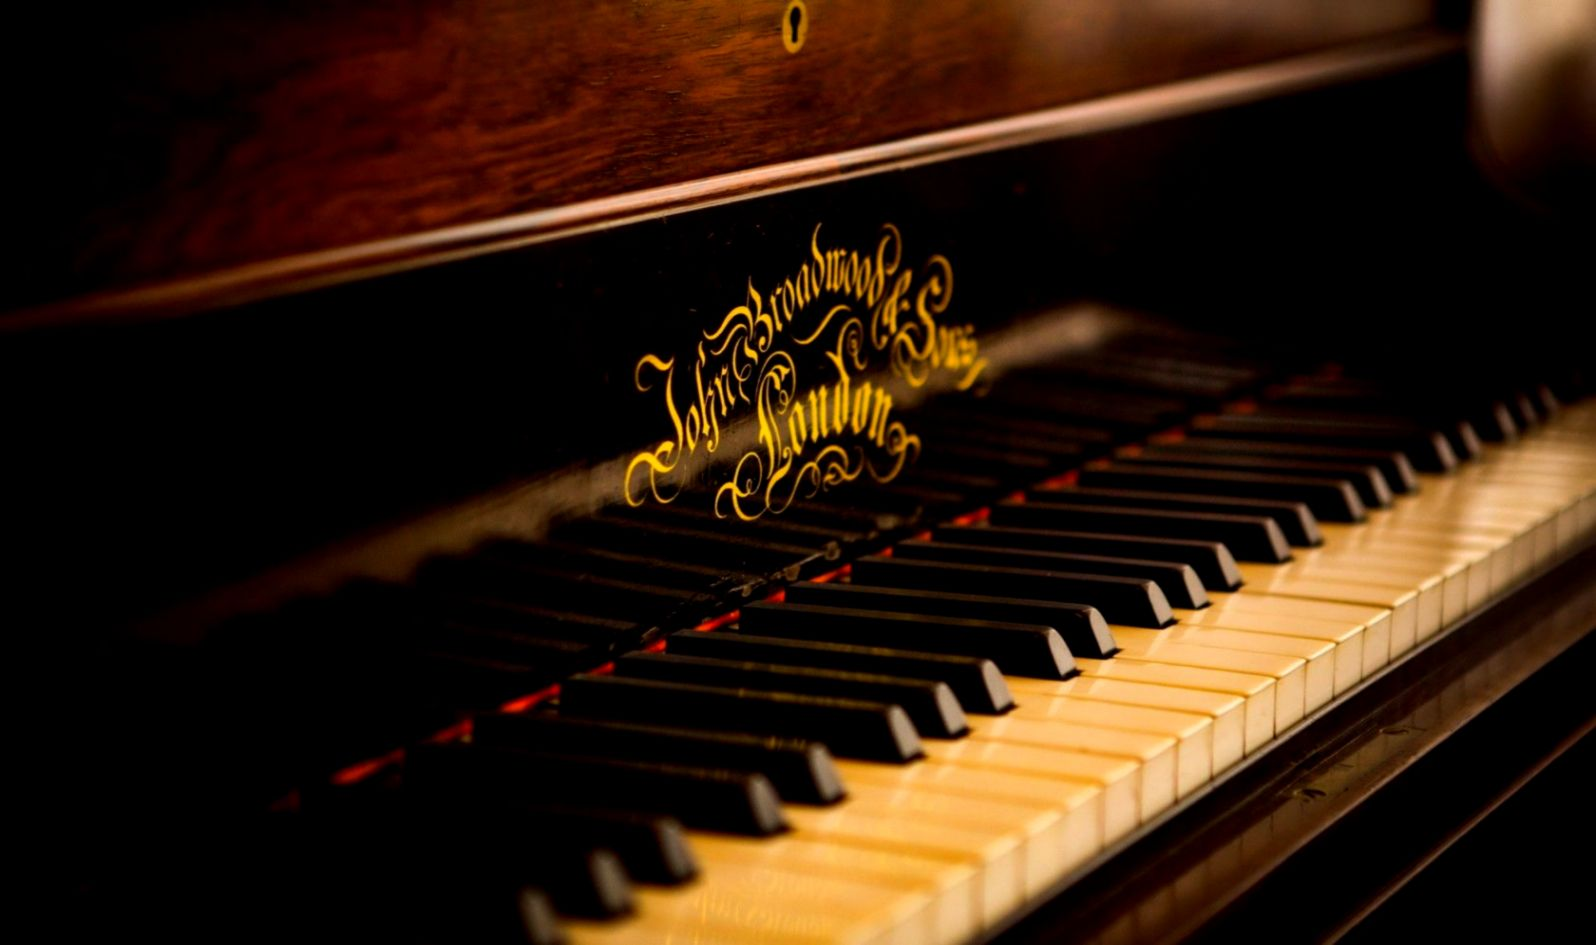 Vintage Piano Wallpaper 4k